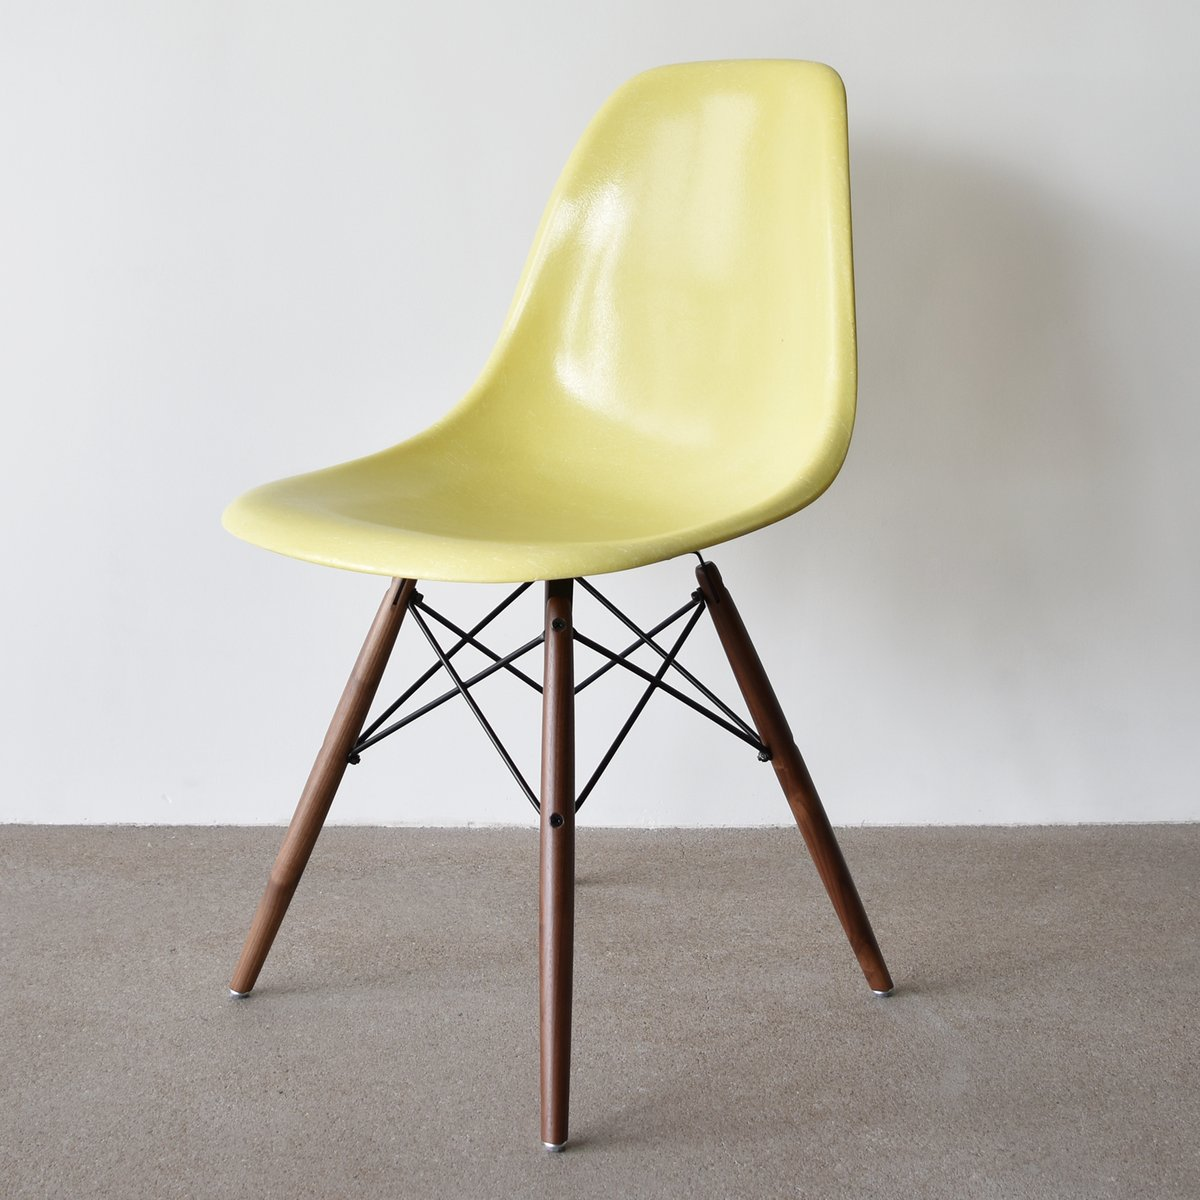 Lemon yellow dsw chair by charles and ray eames for herman for Inspiration dsw de charles ray eames